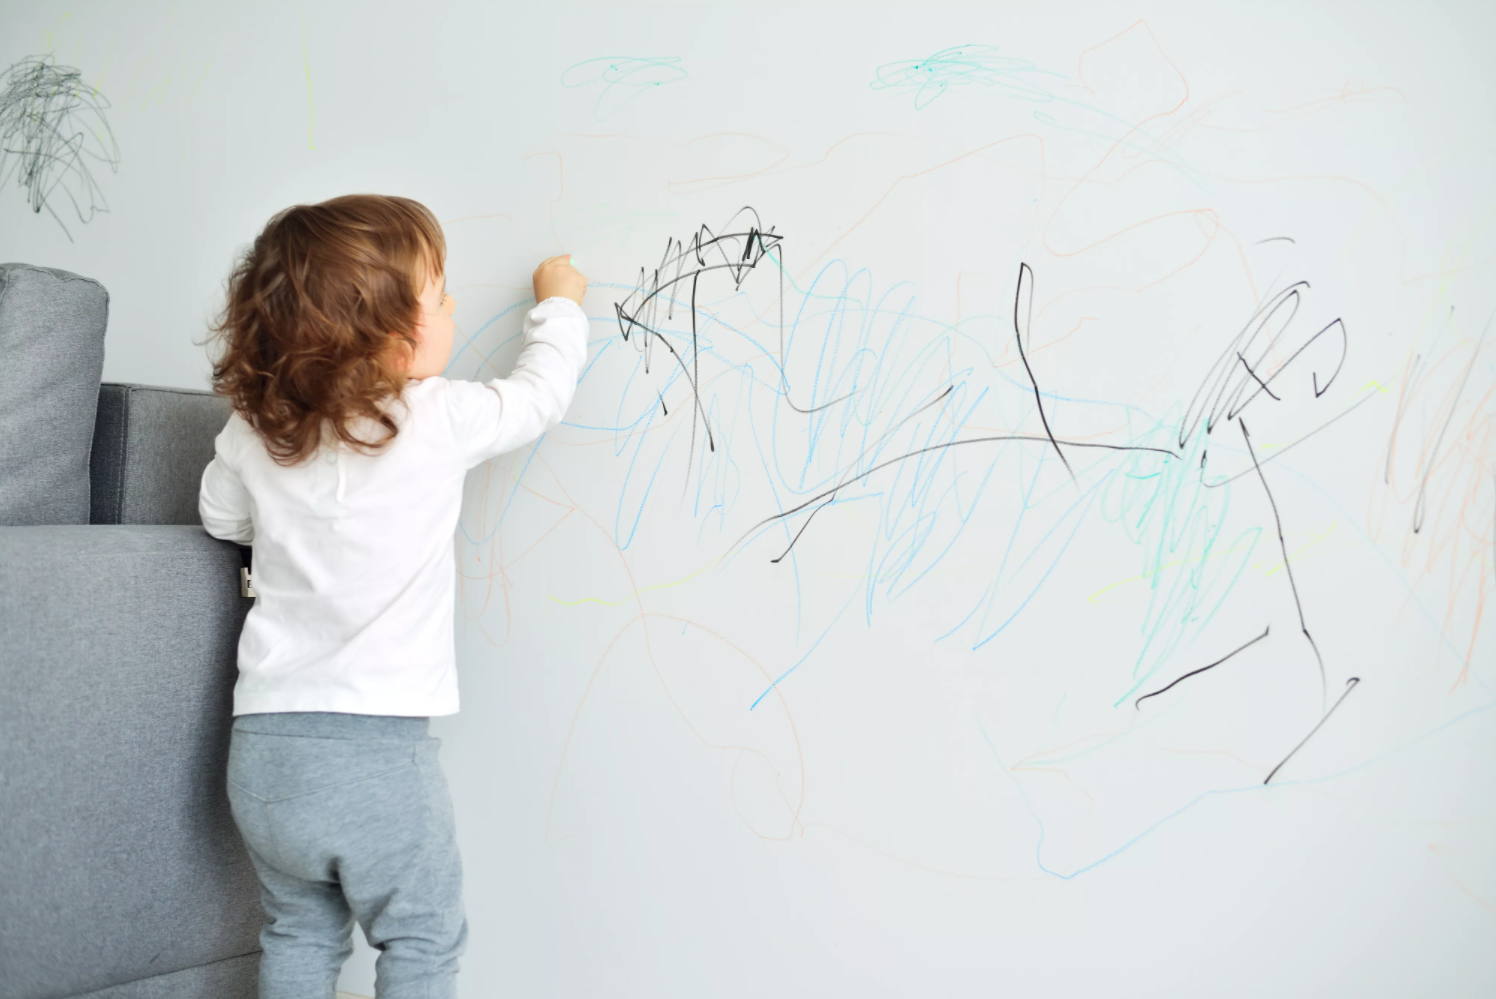 Image of a kid drawing on a wall